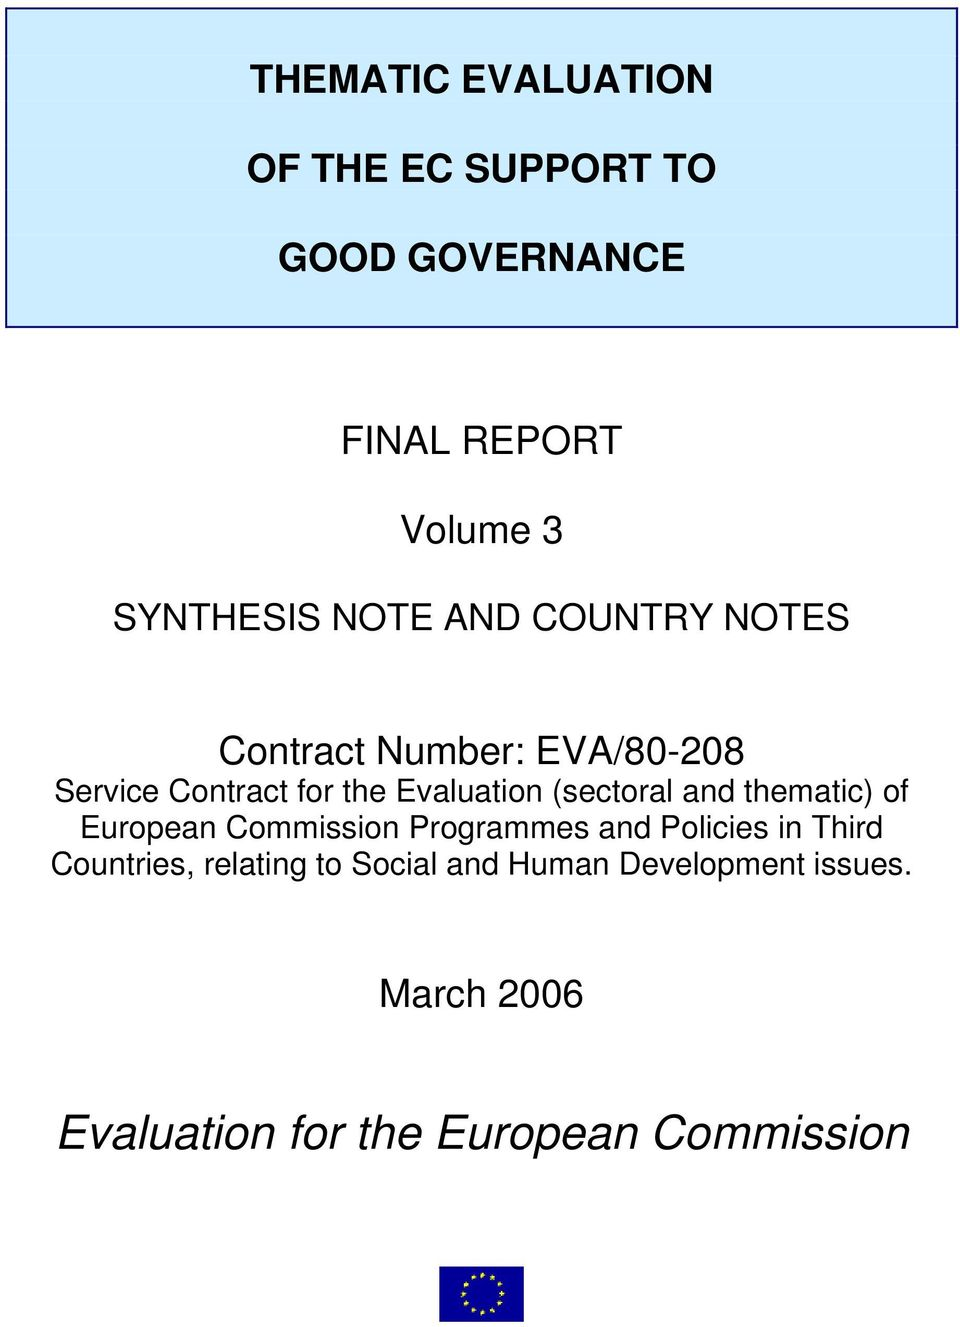 (sectoral and thematic) of European Commission Programmes and Policies in Third Countries,